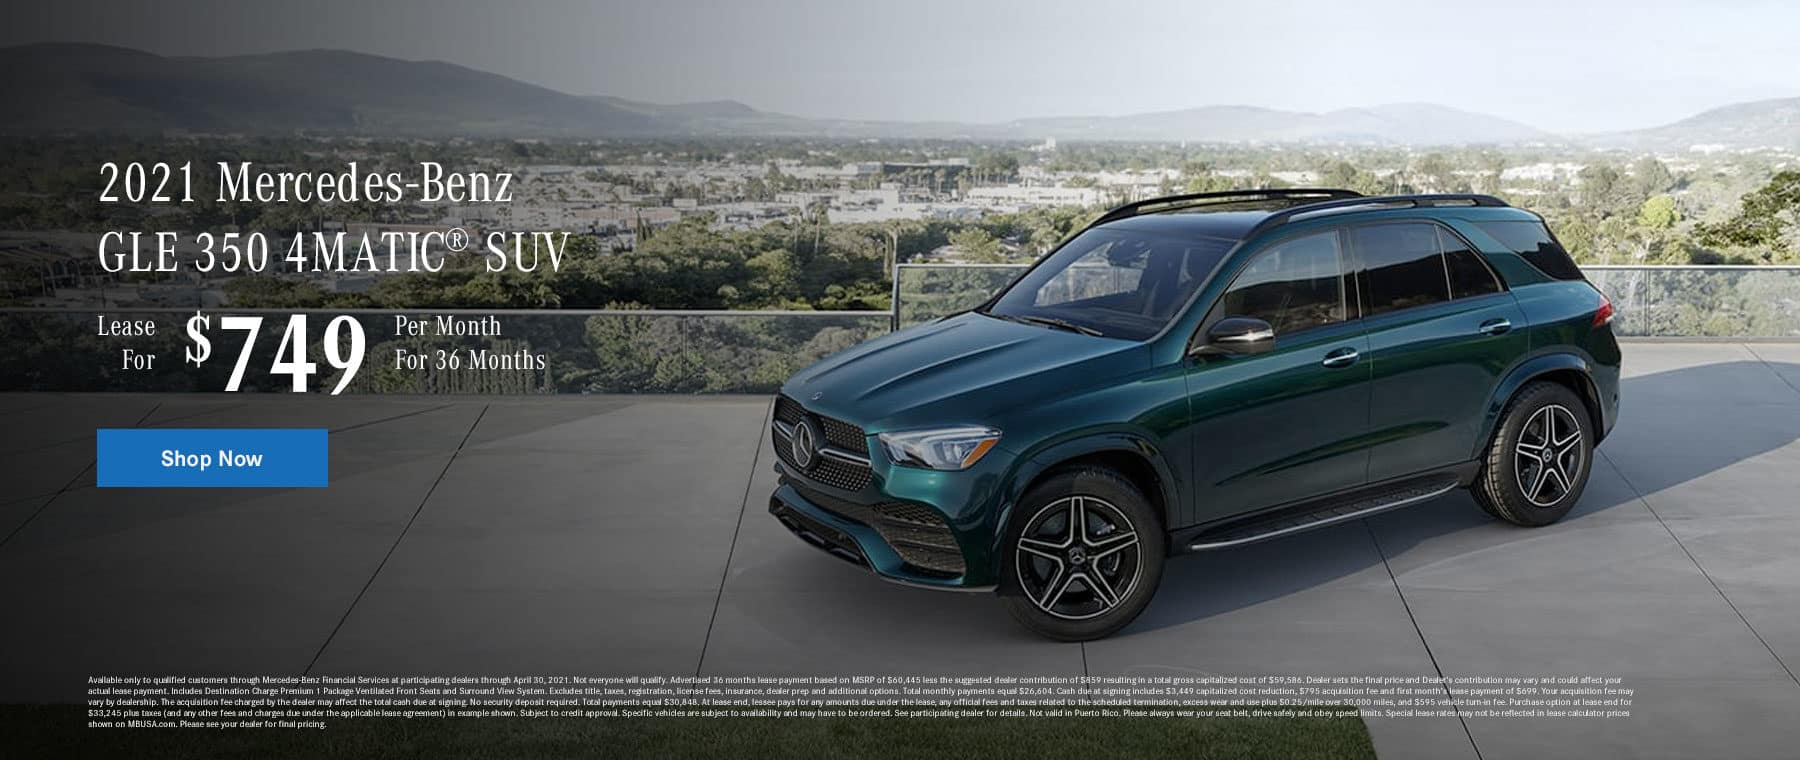 2021 Mercedes-Benz GLE 350 4MATIC® SUV, Lease for $749 Per Month for 36 Months